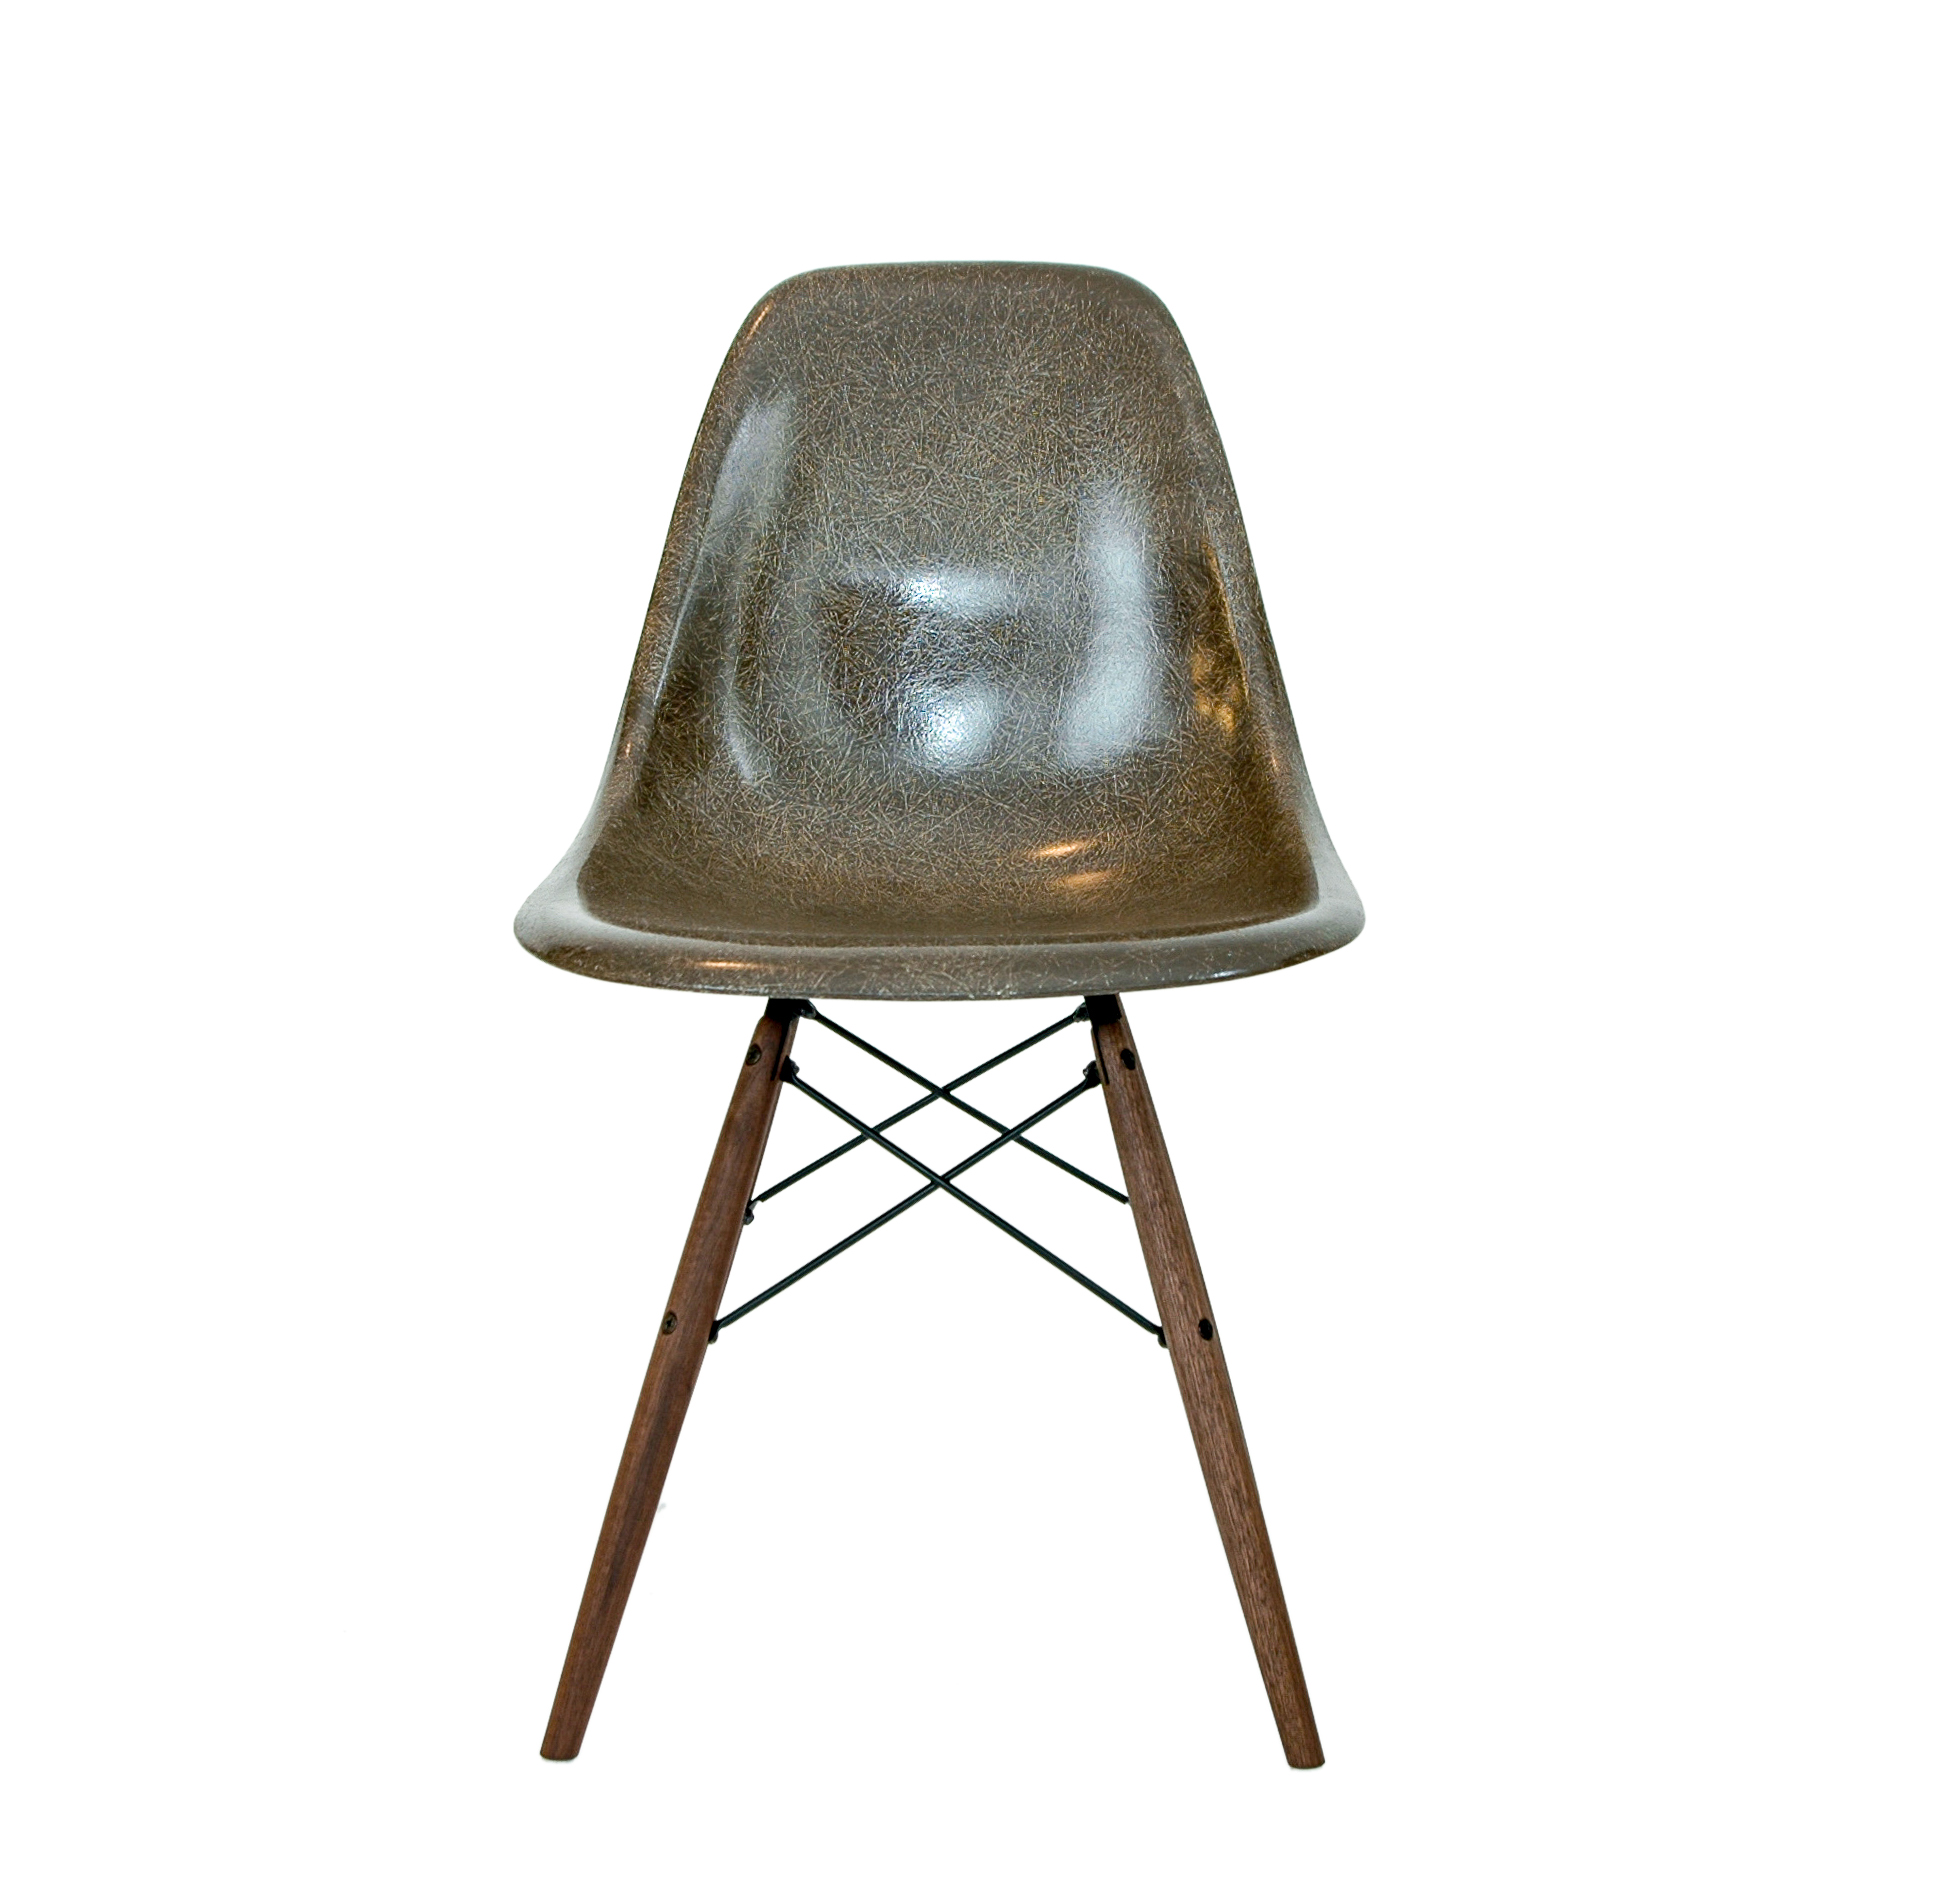 Chair Eames Eames Molded Fiberglass Chair - Herman Miller - Ibiza Interiors